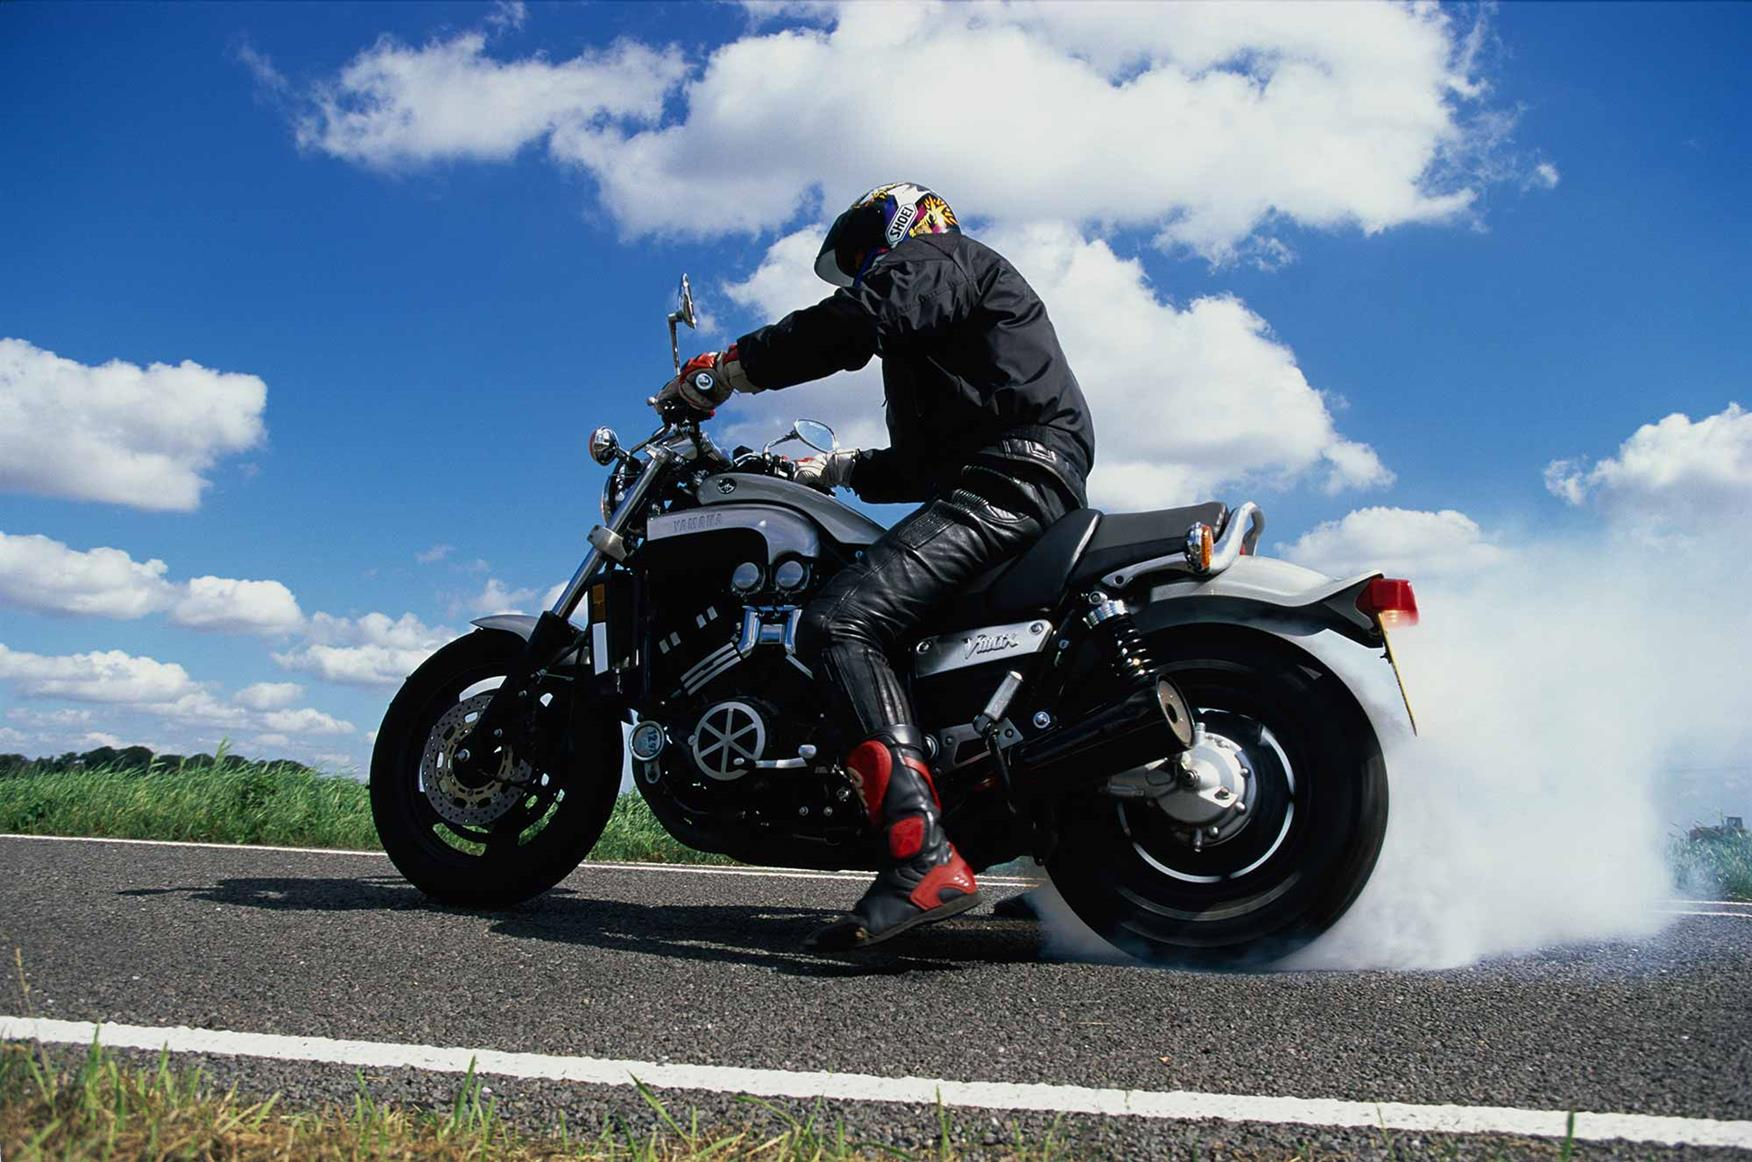 A burnout on the early Yamaha V-Max